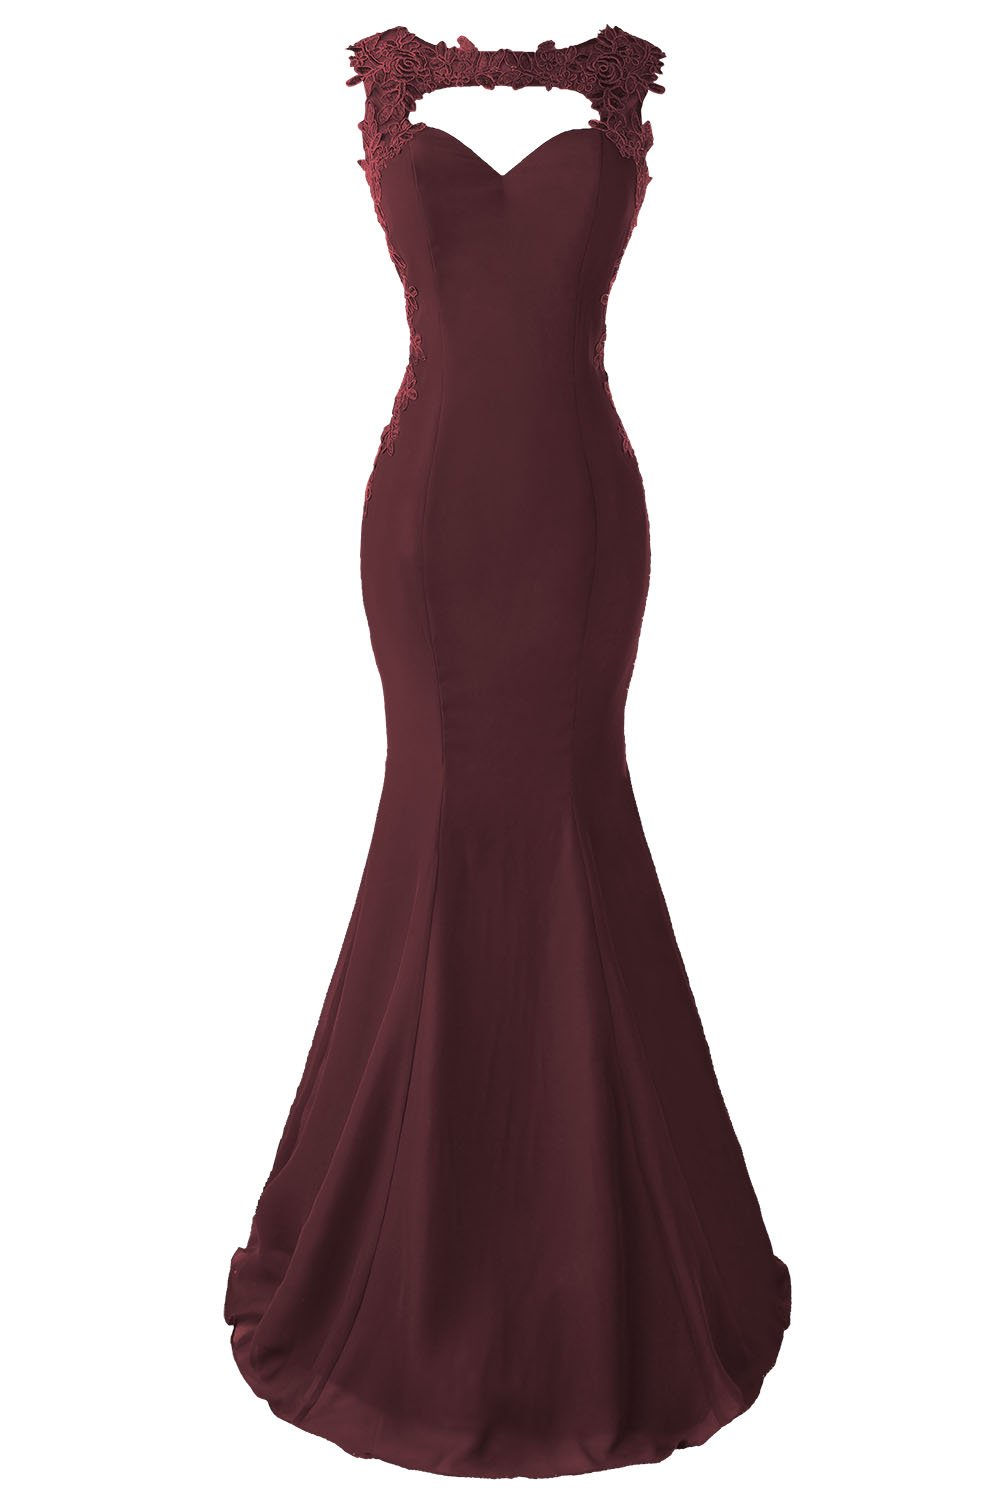 Topdress Women's Mermaid Prom Dress Lace Appliques Sheer Back Evening Gowns Burgundy US 20Plus